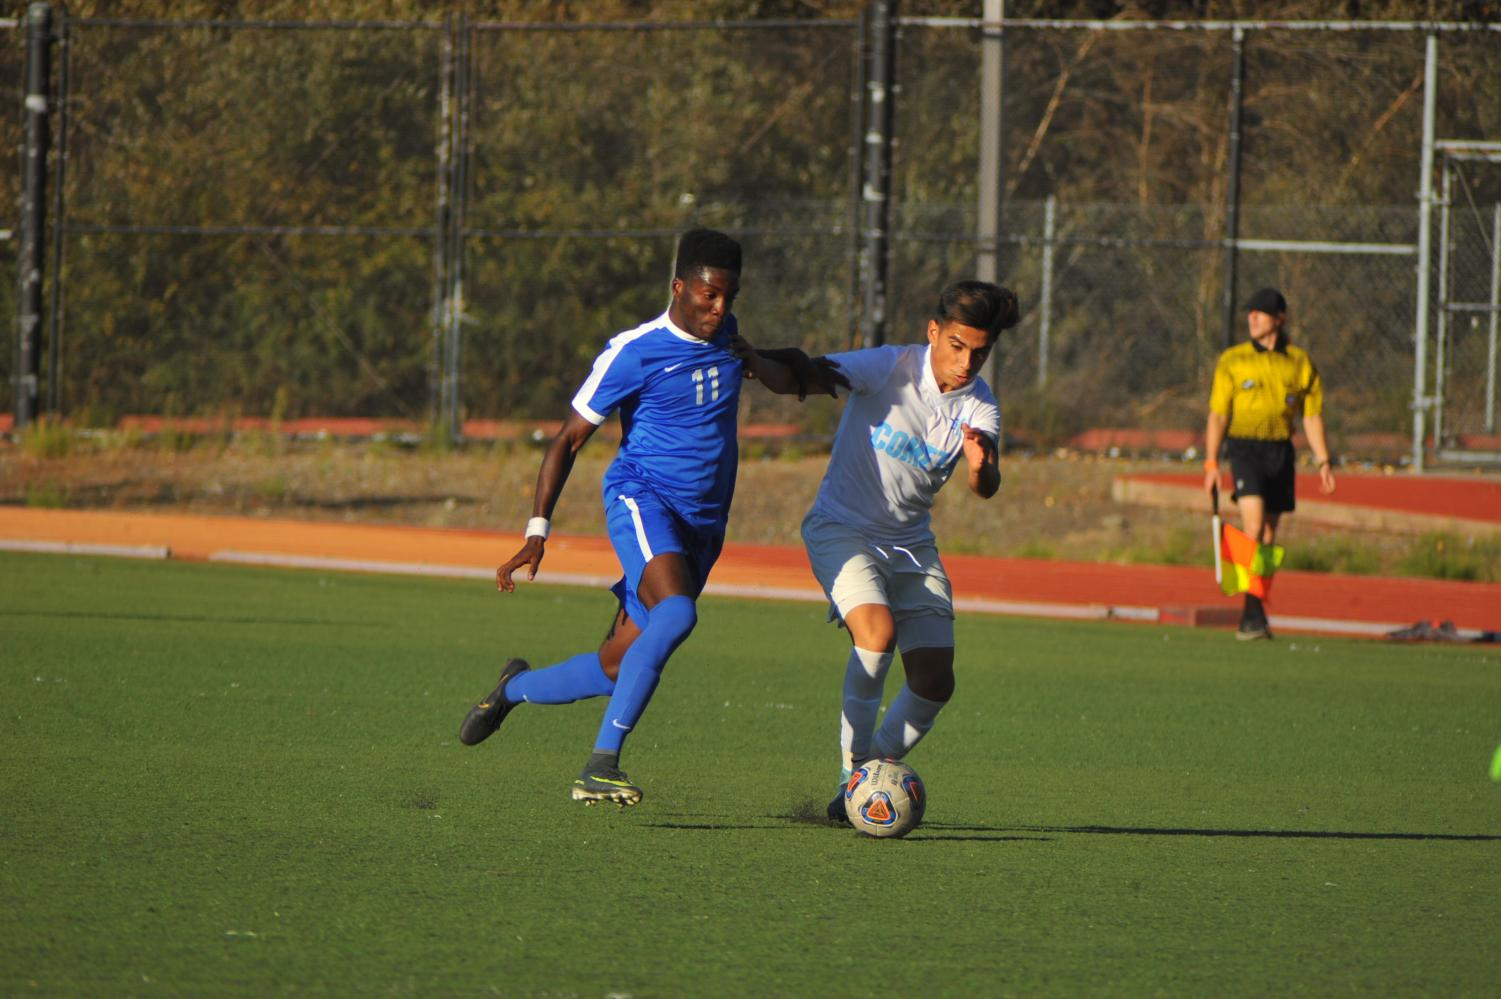 Comet defender Raul Garcia (right) loses possession of the ball to Thunderbird midfielder Haruna Mubarak resulting in the game's lone score Friday in Oakland.